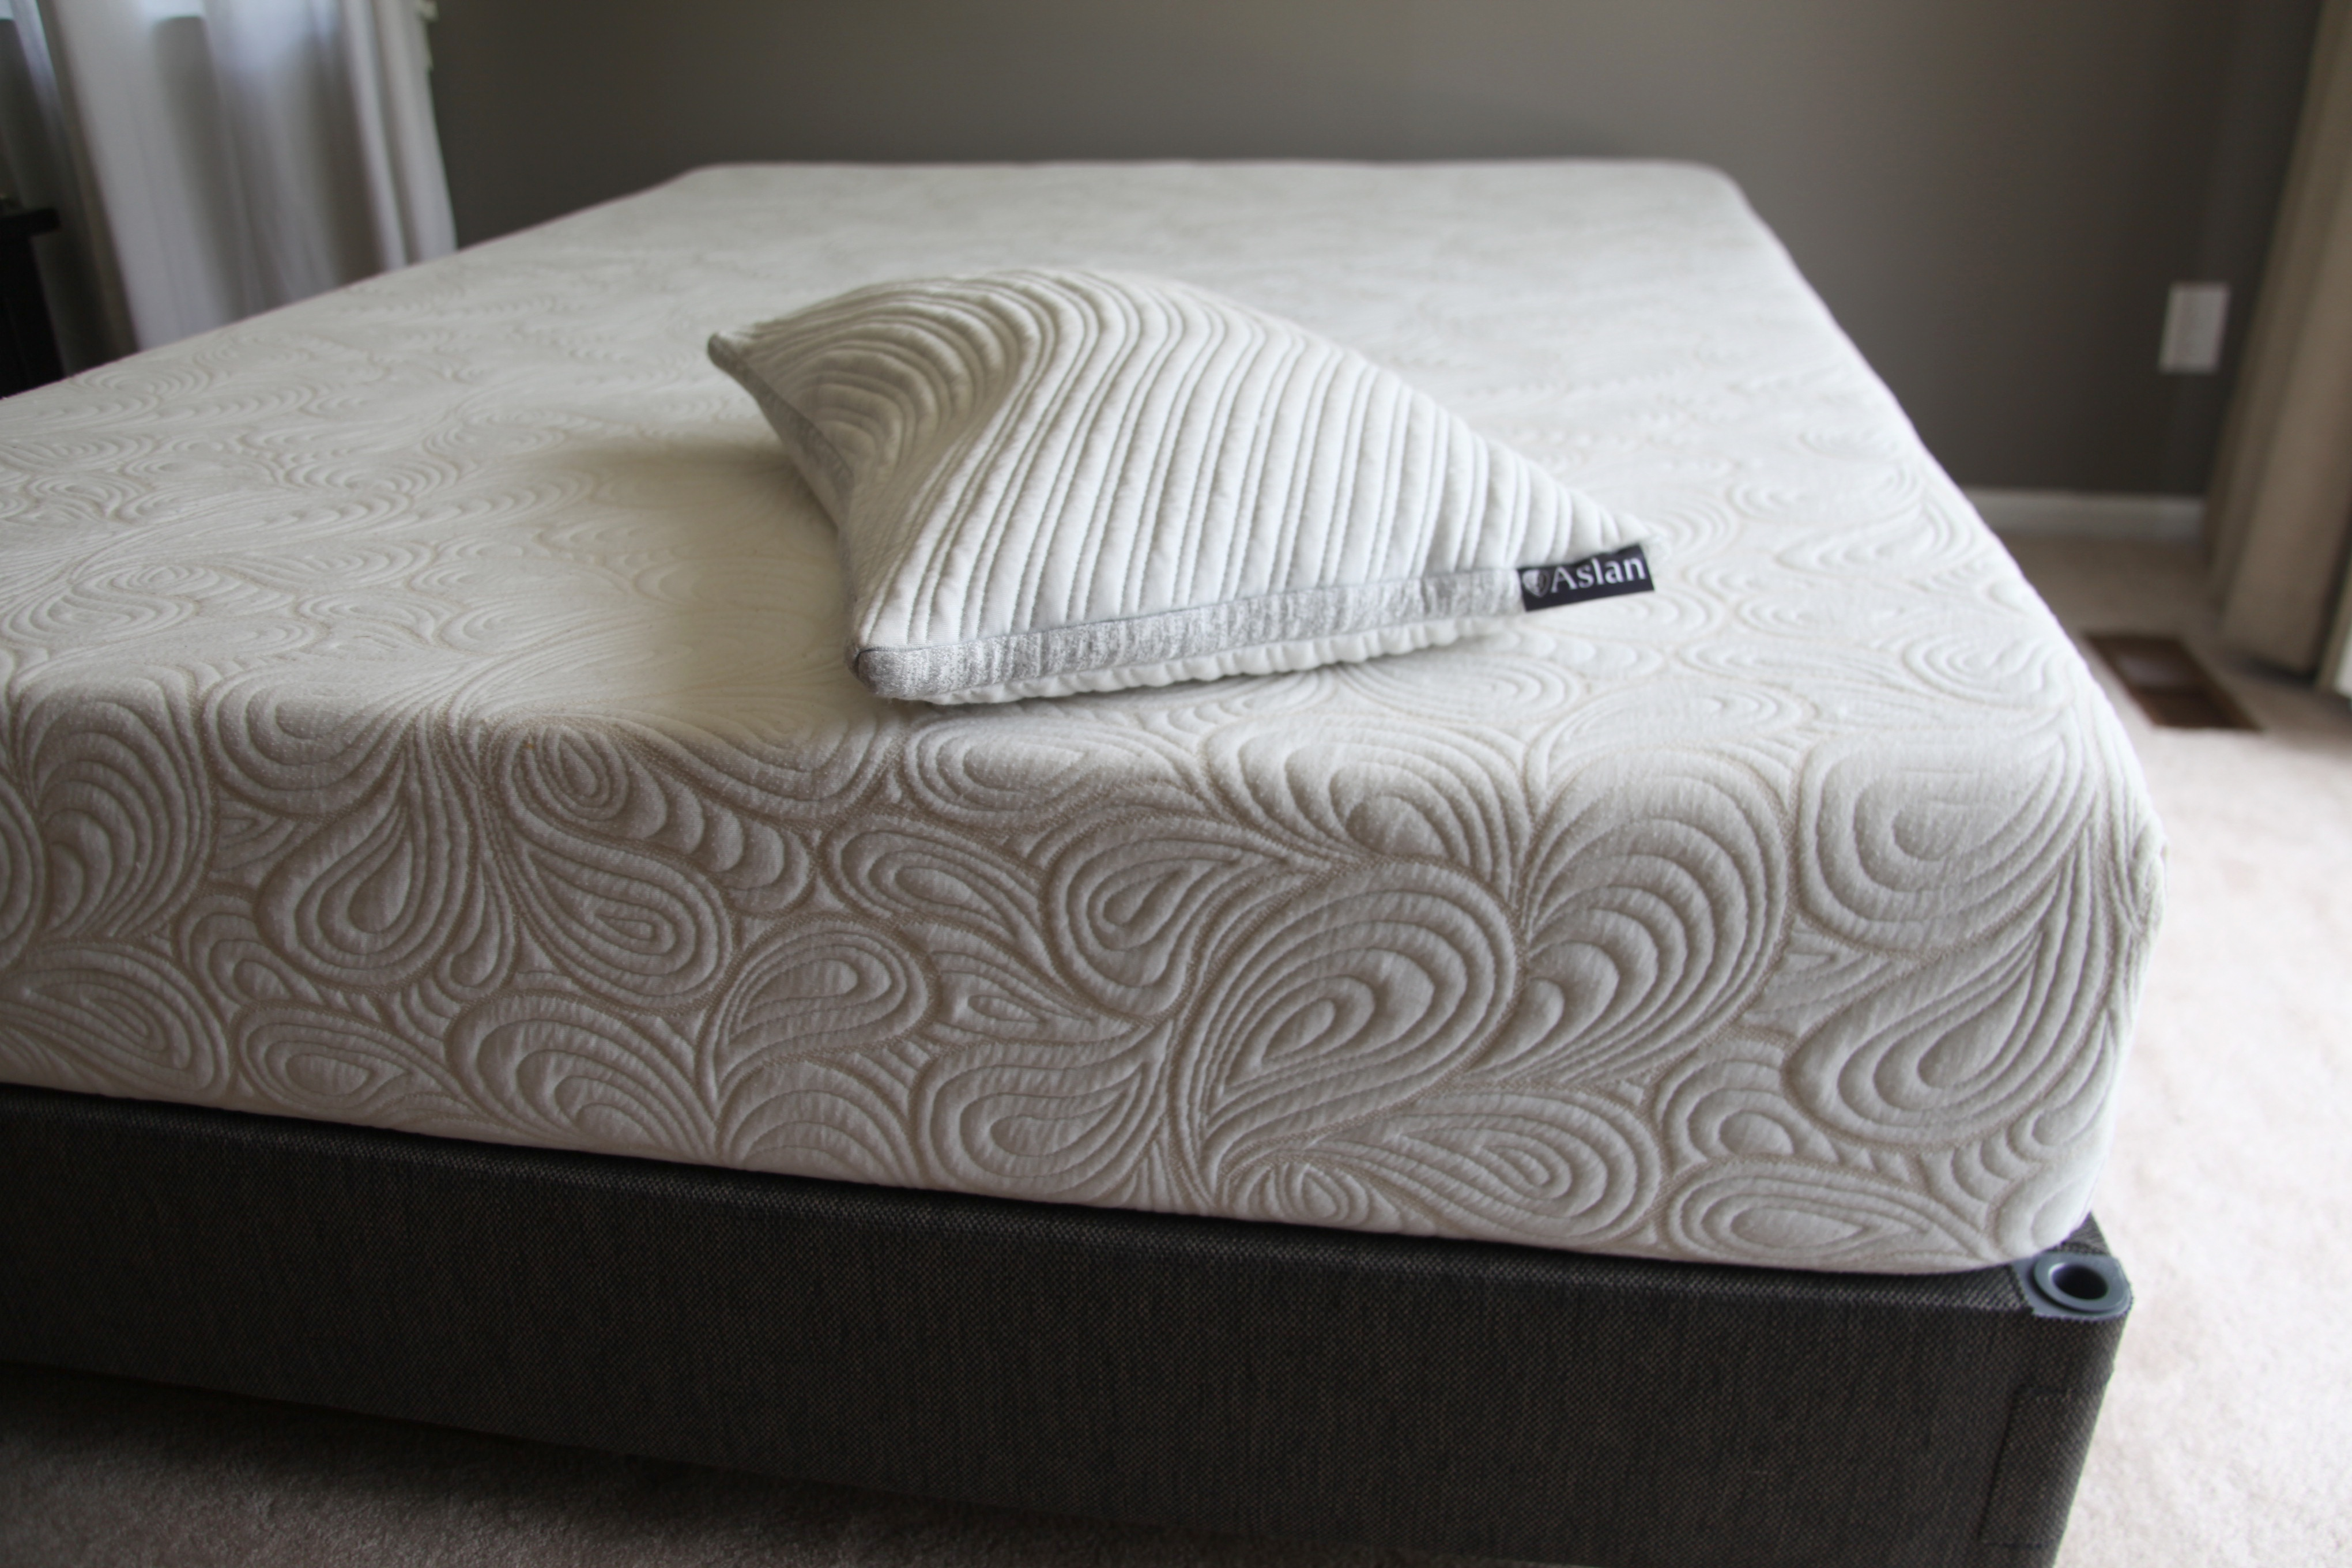 Aslan Mattress Review